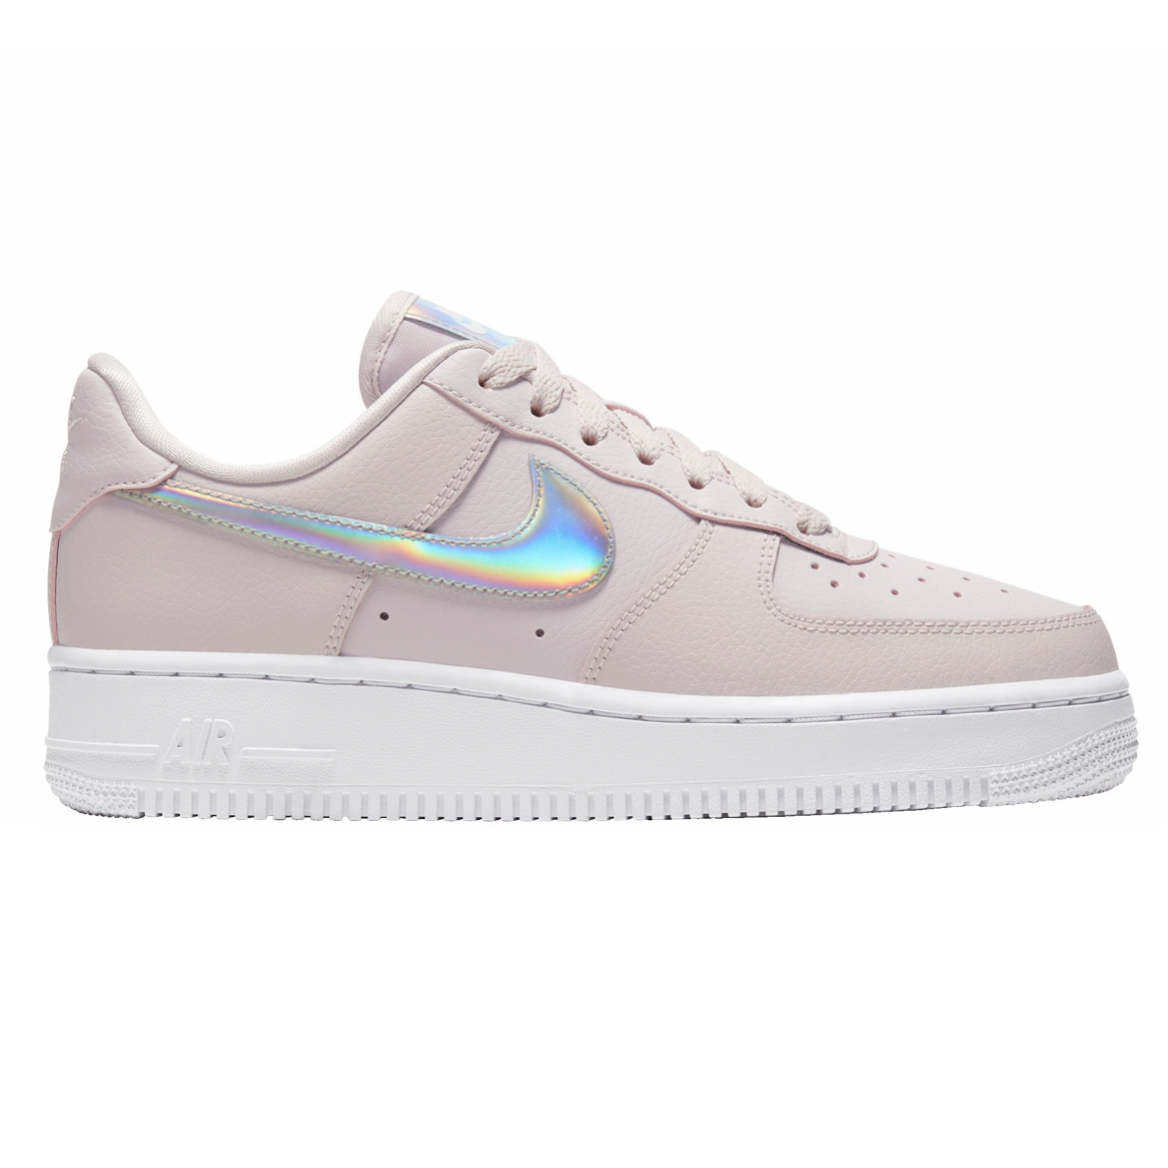 The Best Nike Air Force 1 Sneakers to Shop - Cool Air Force 1s